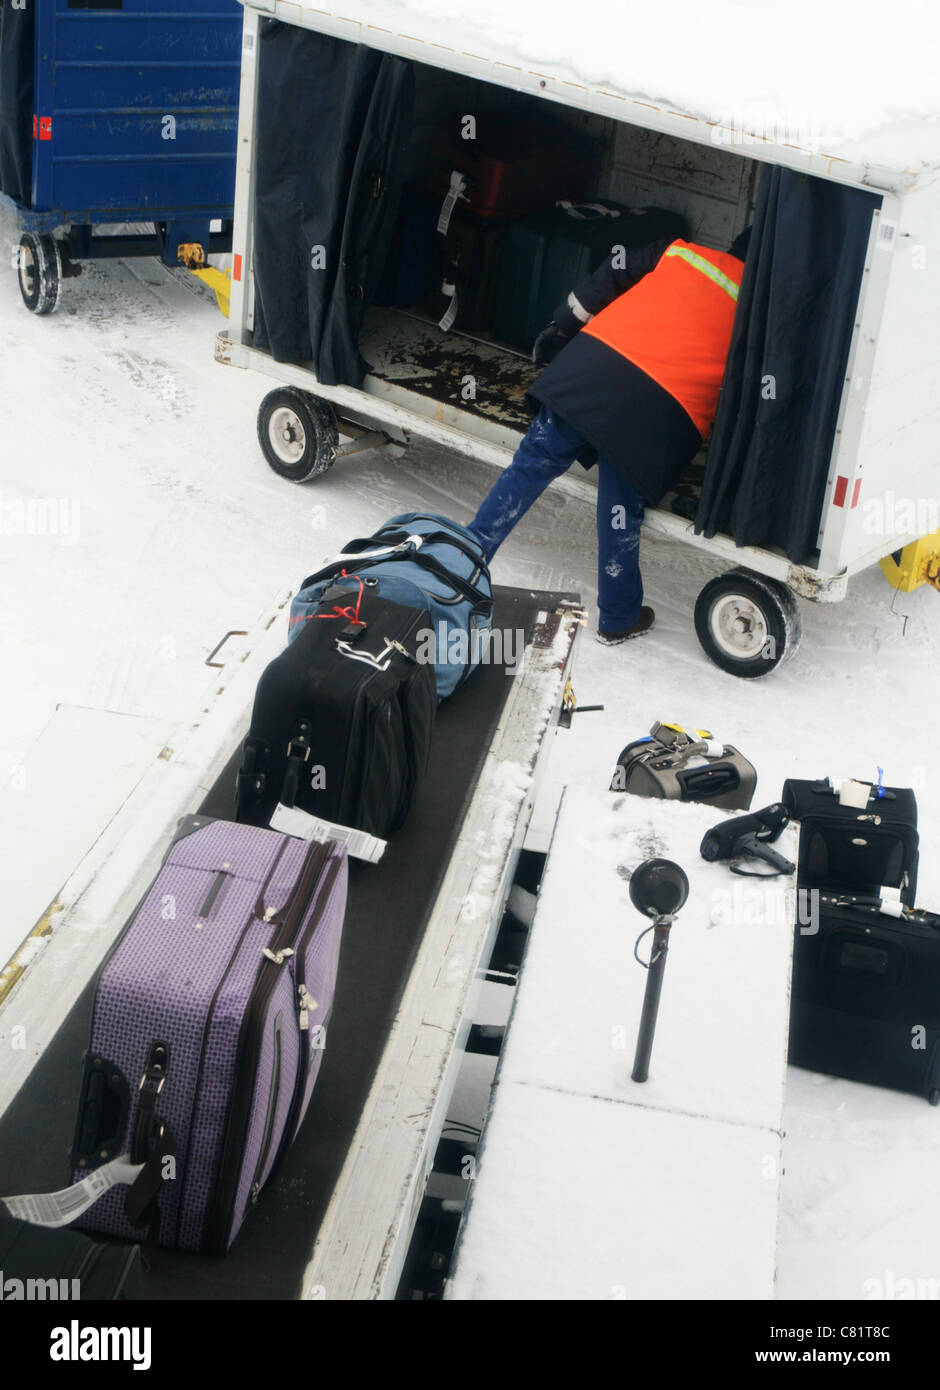 an airline baggage handler loading baggage from a cart onto a conveyor belt on a cold gray snowy day - Stock Image